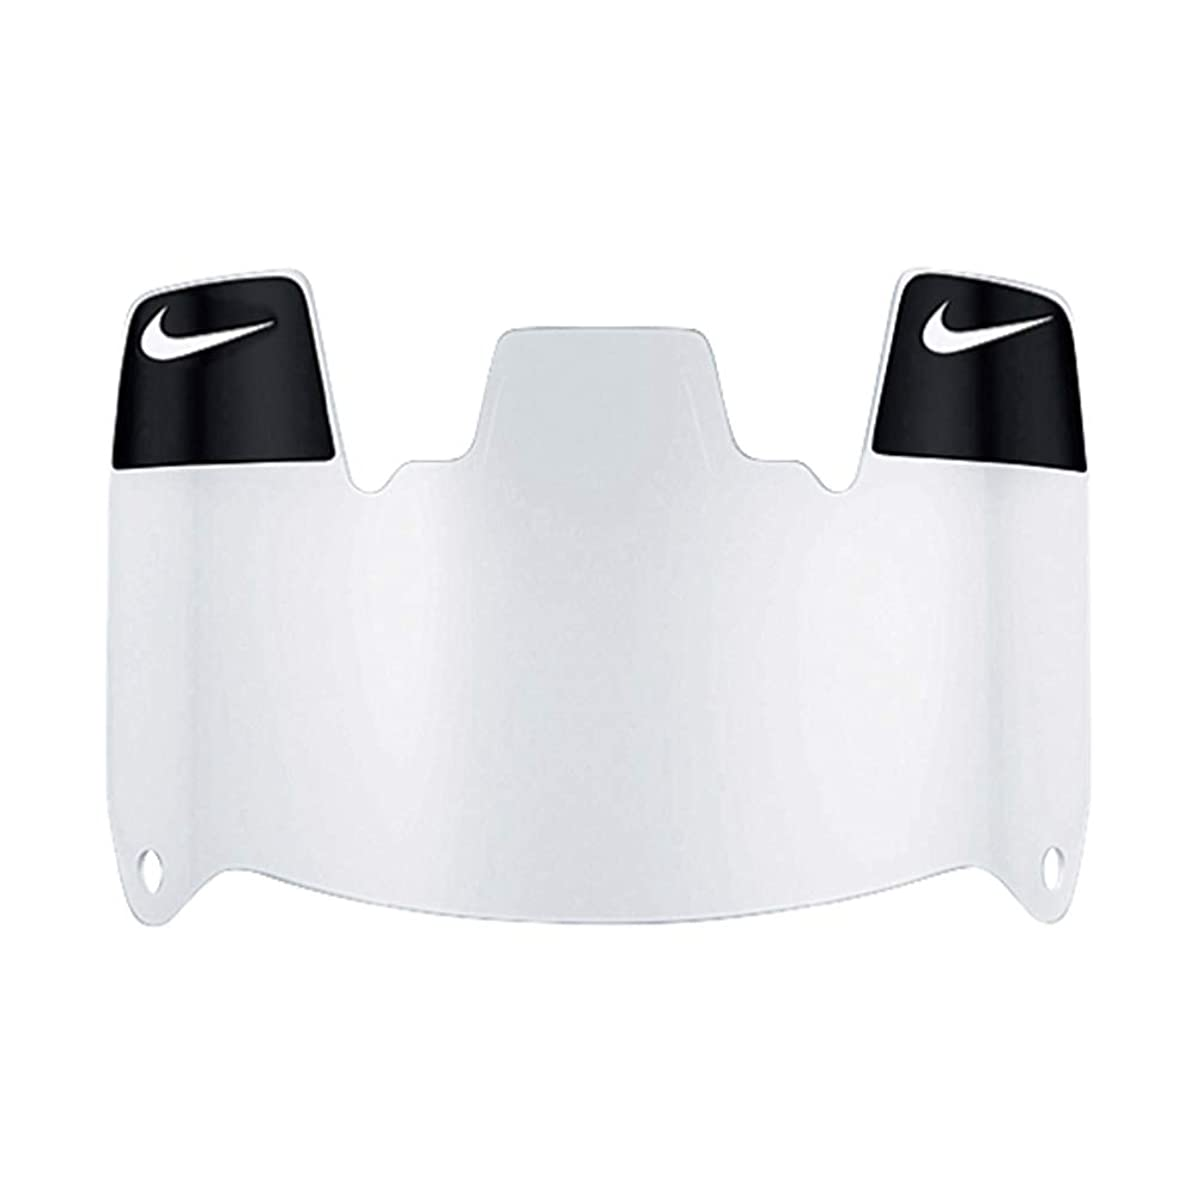 Nike Gridiron Eye Shield with Decals 2.0